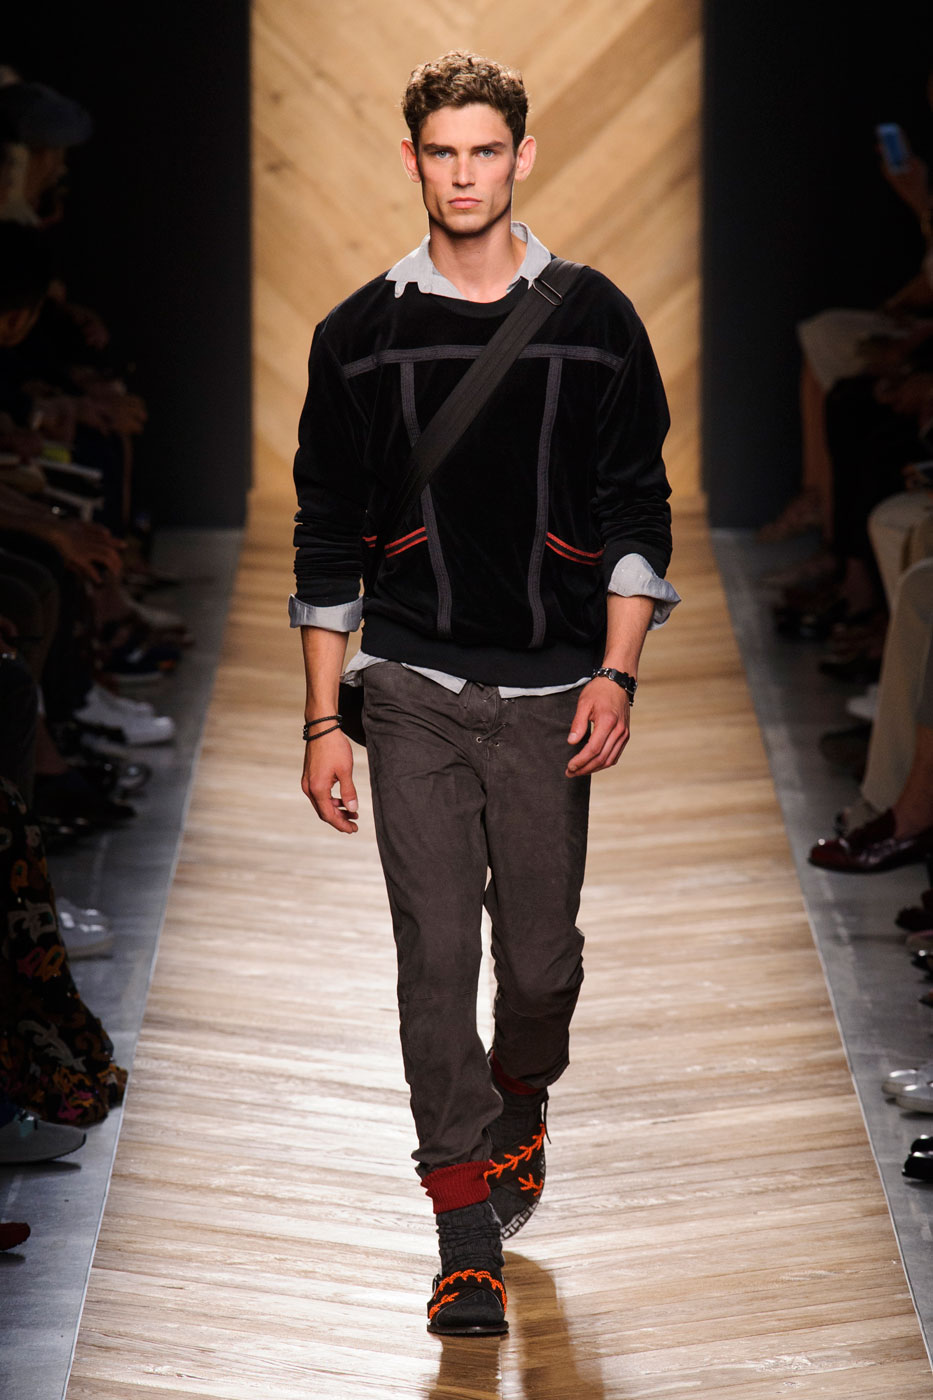 Current trends in fashion for men